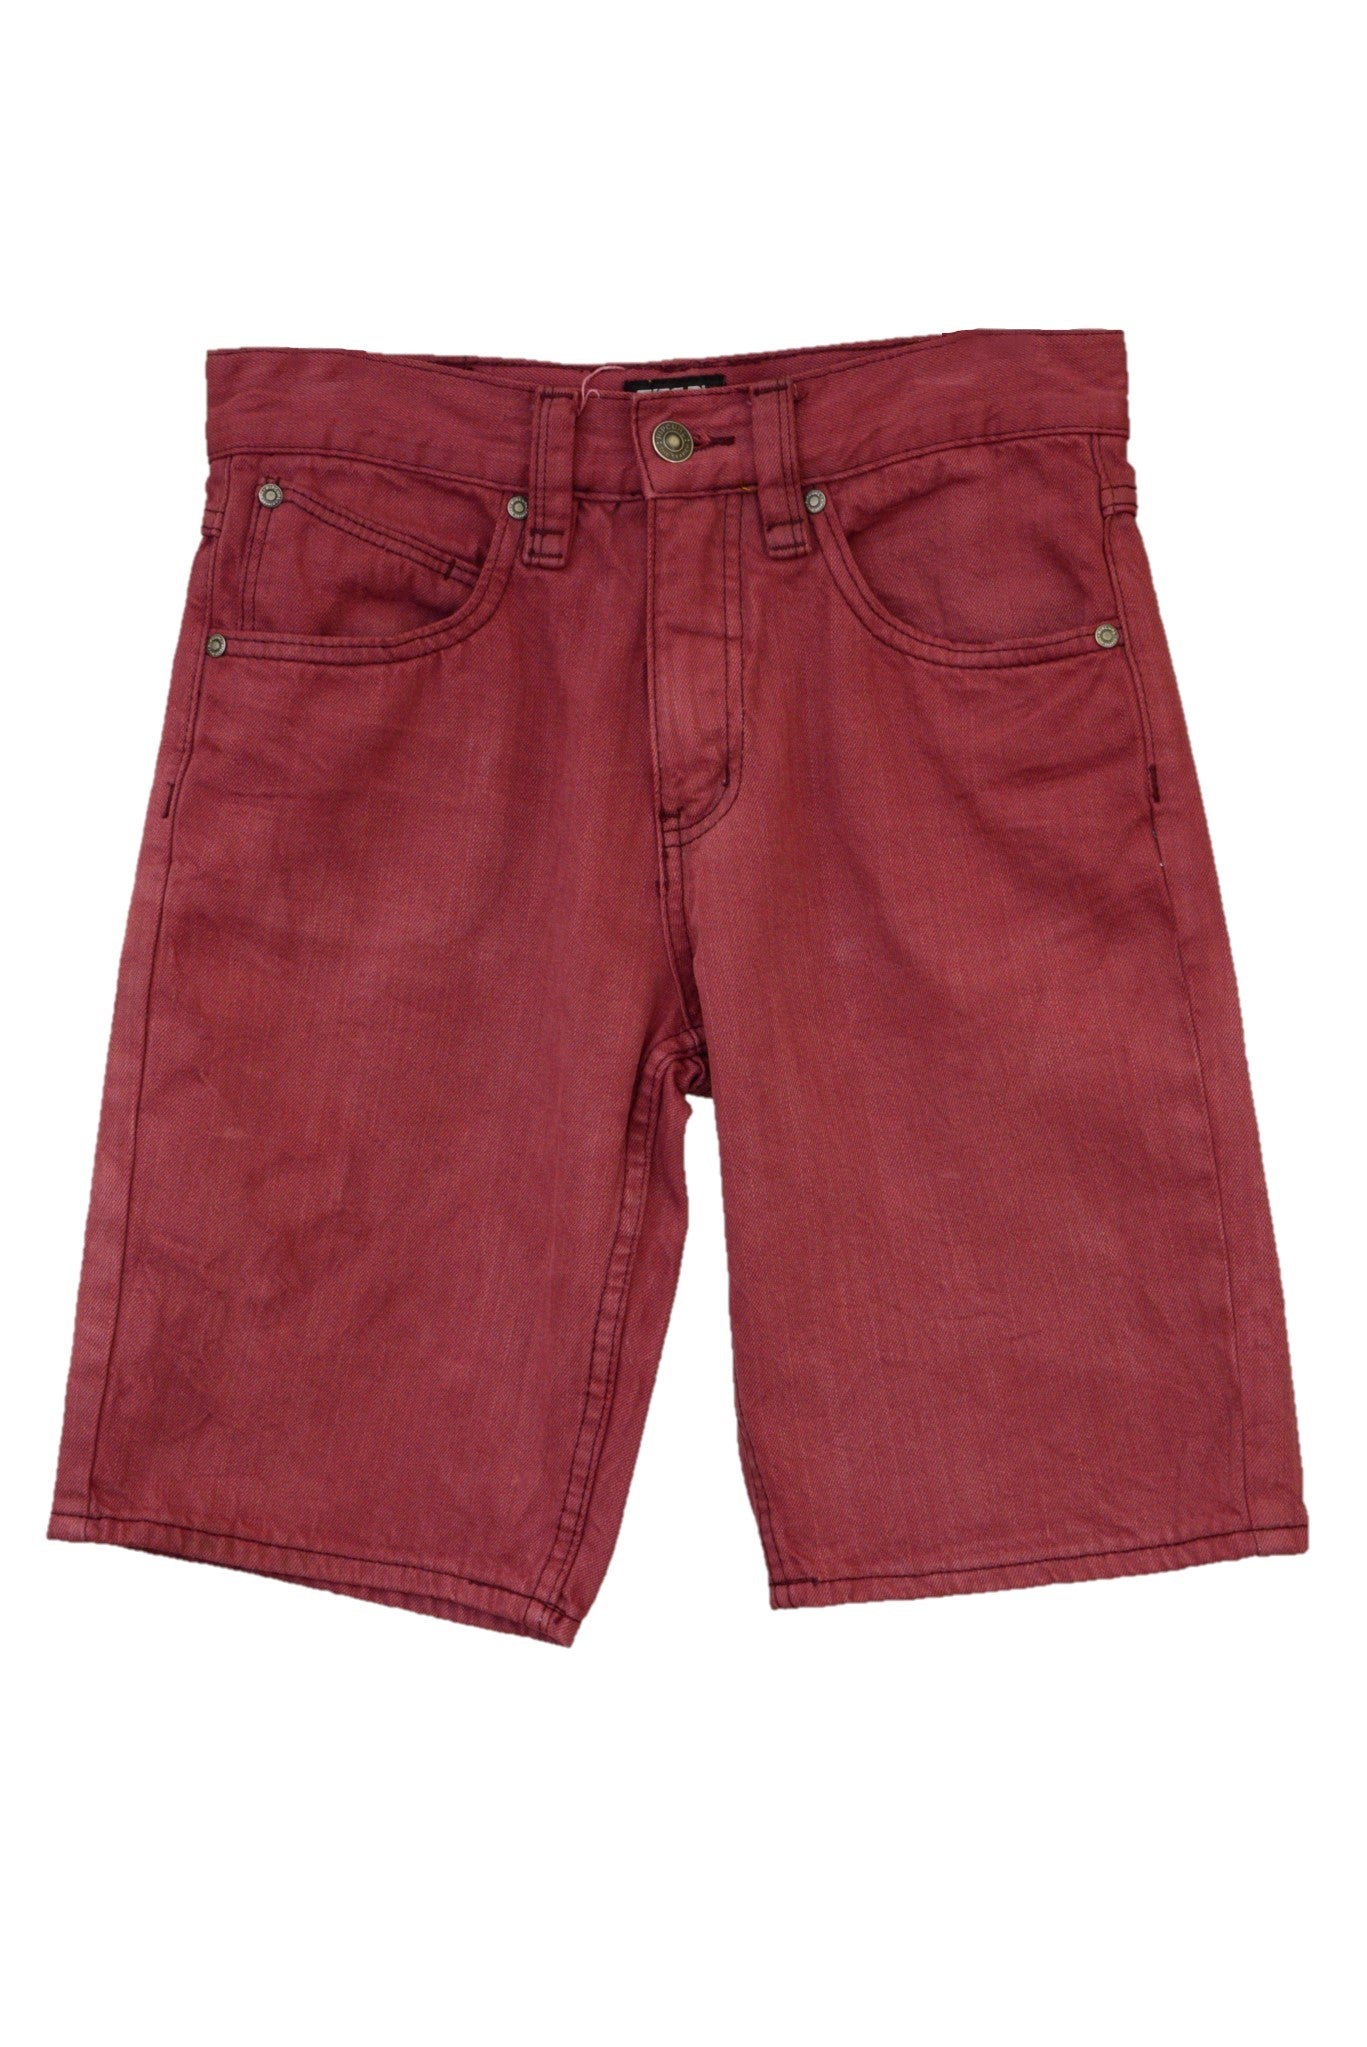 Rip Curl boy's red shorts